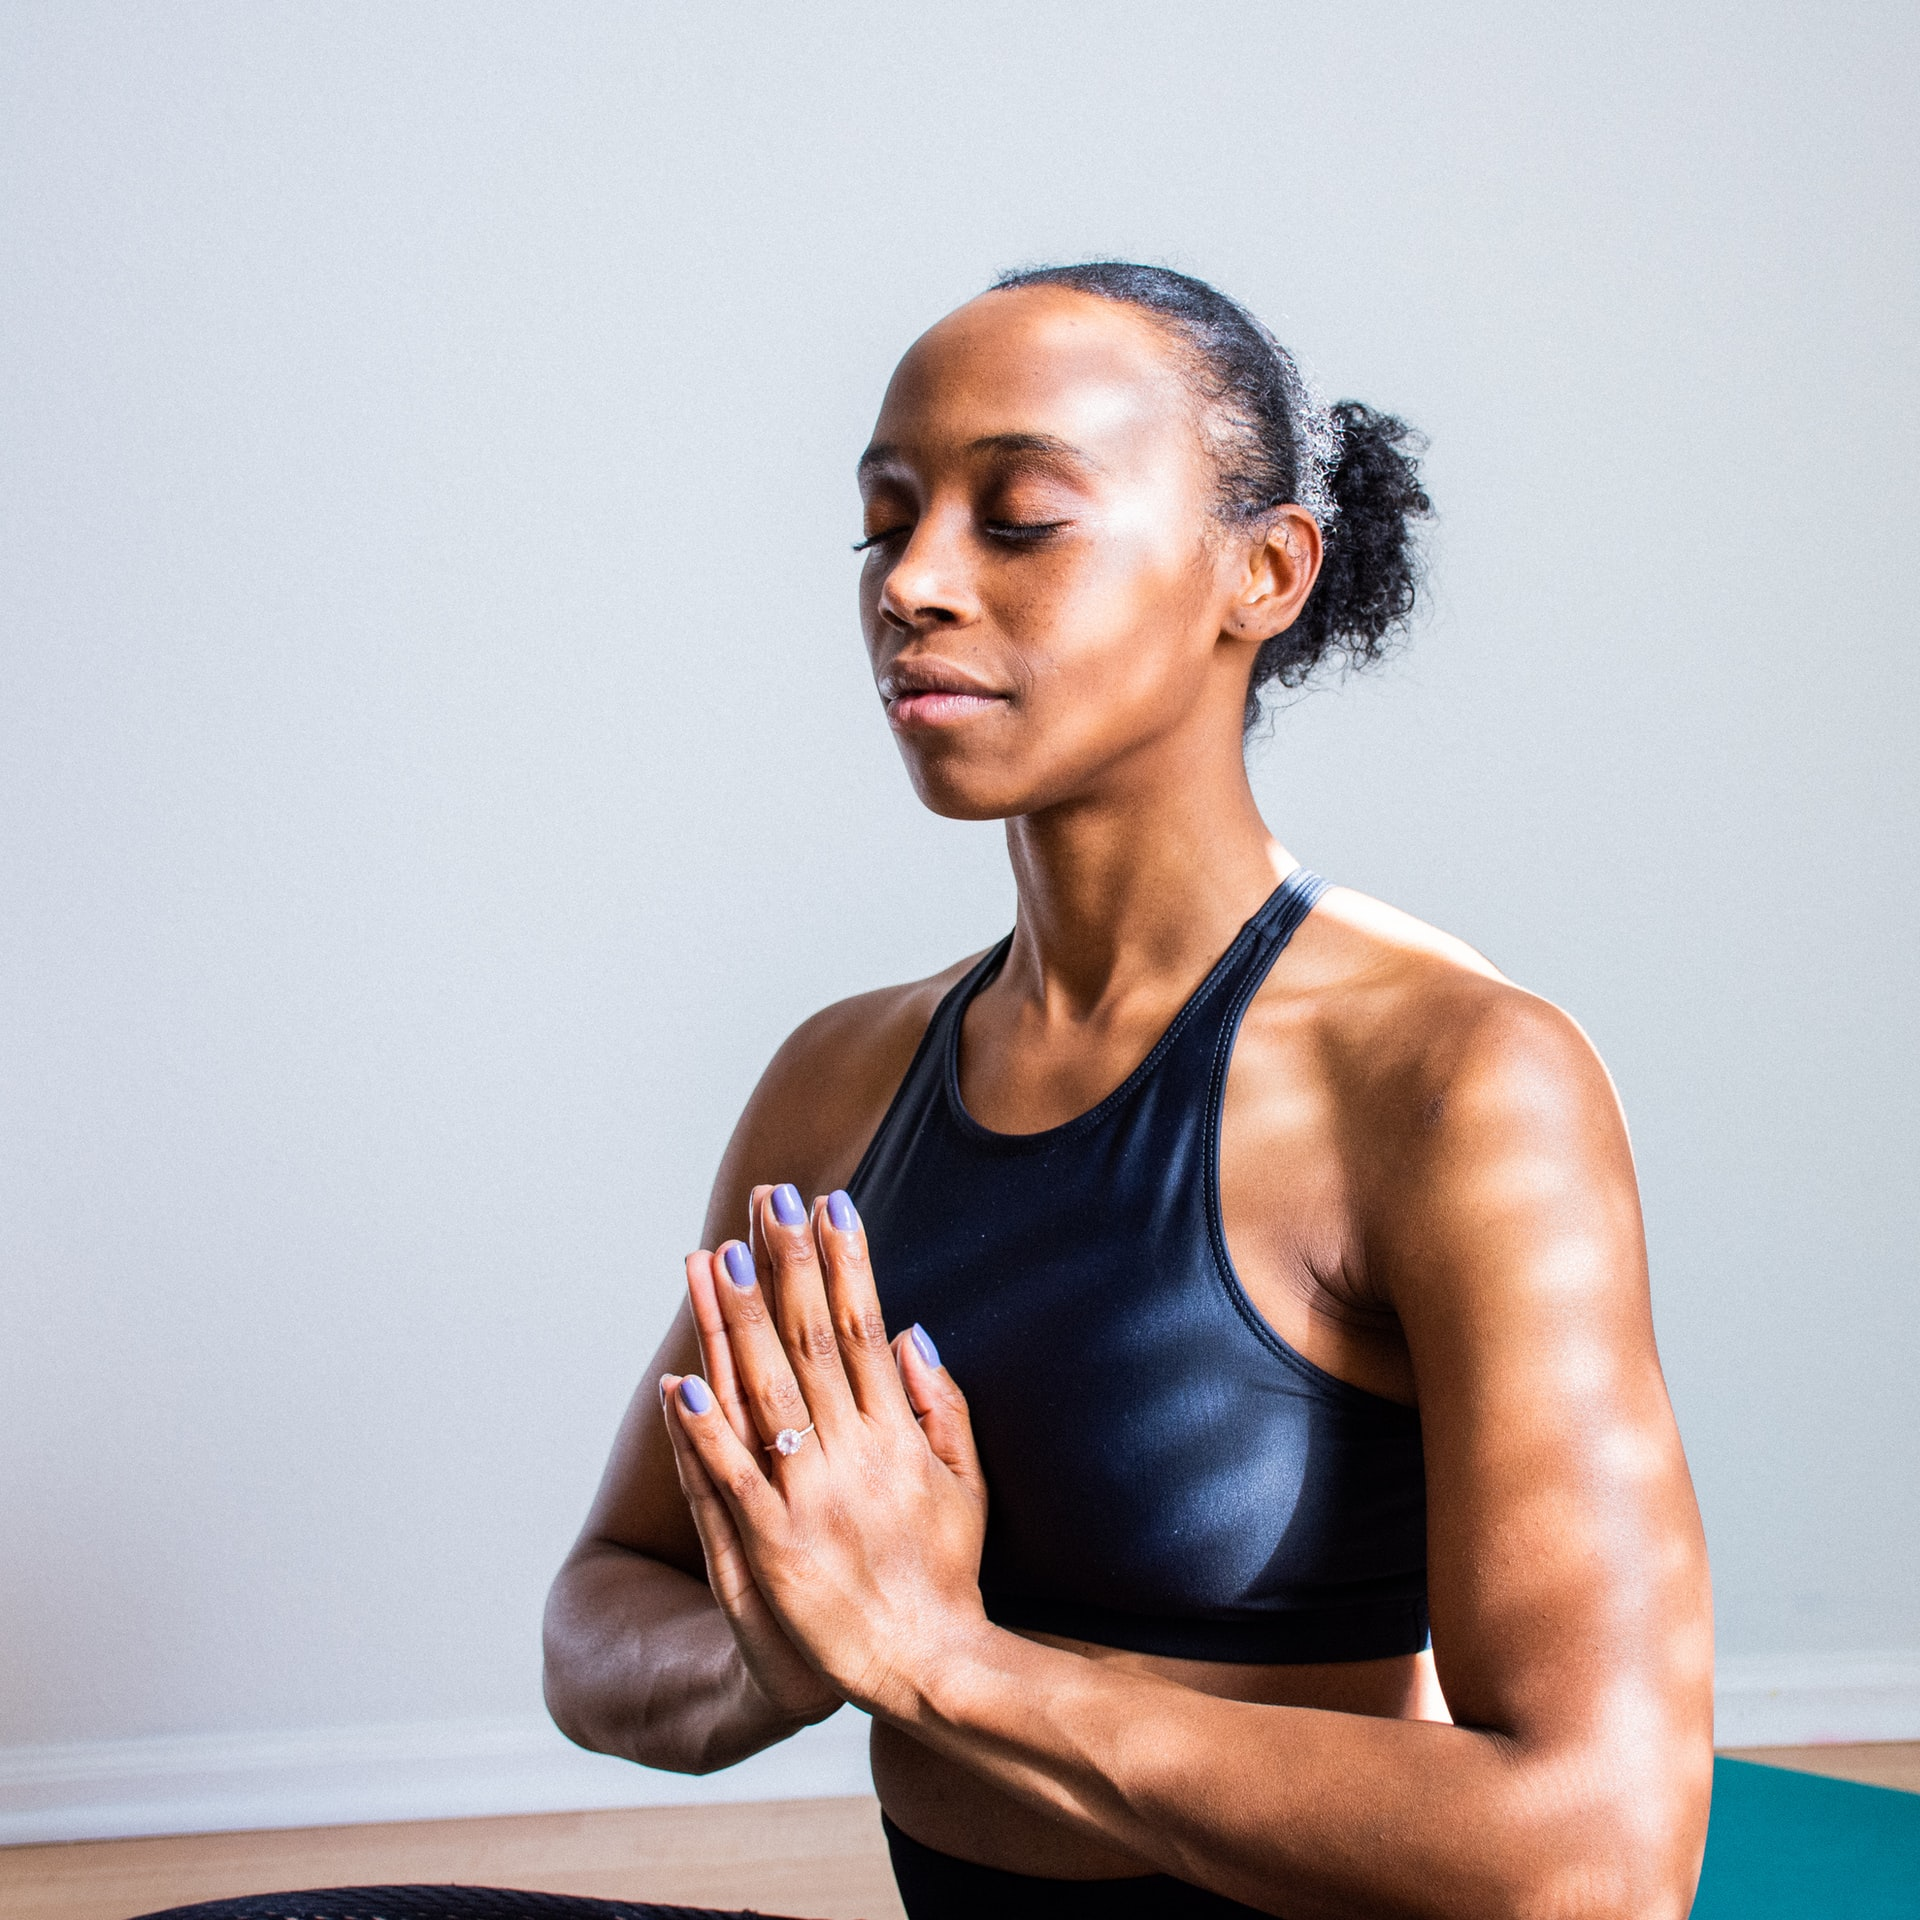 meditation for pain relief and better sleep